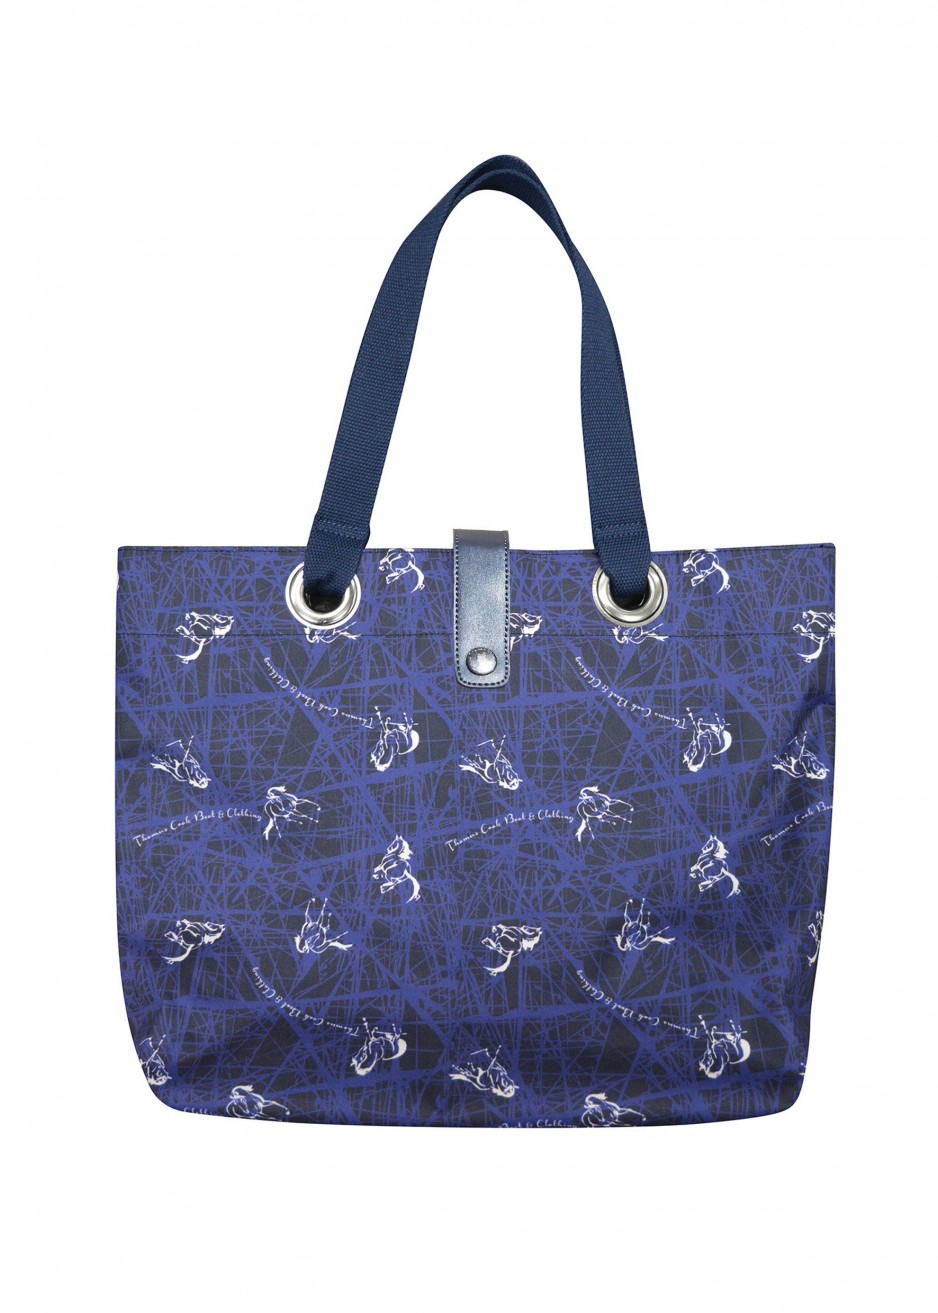 TC SNAP TOTE BAG